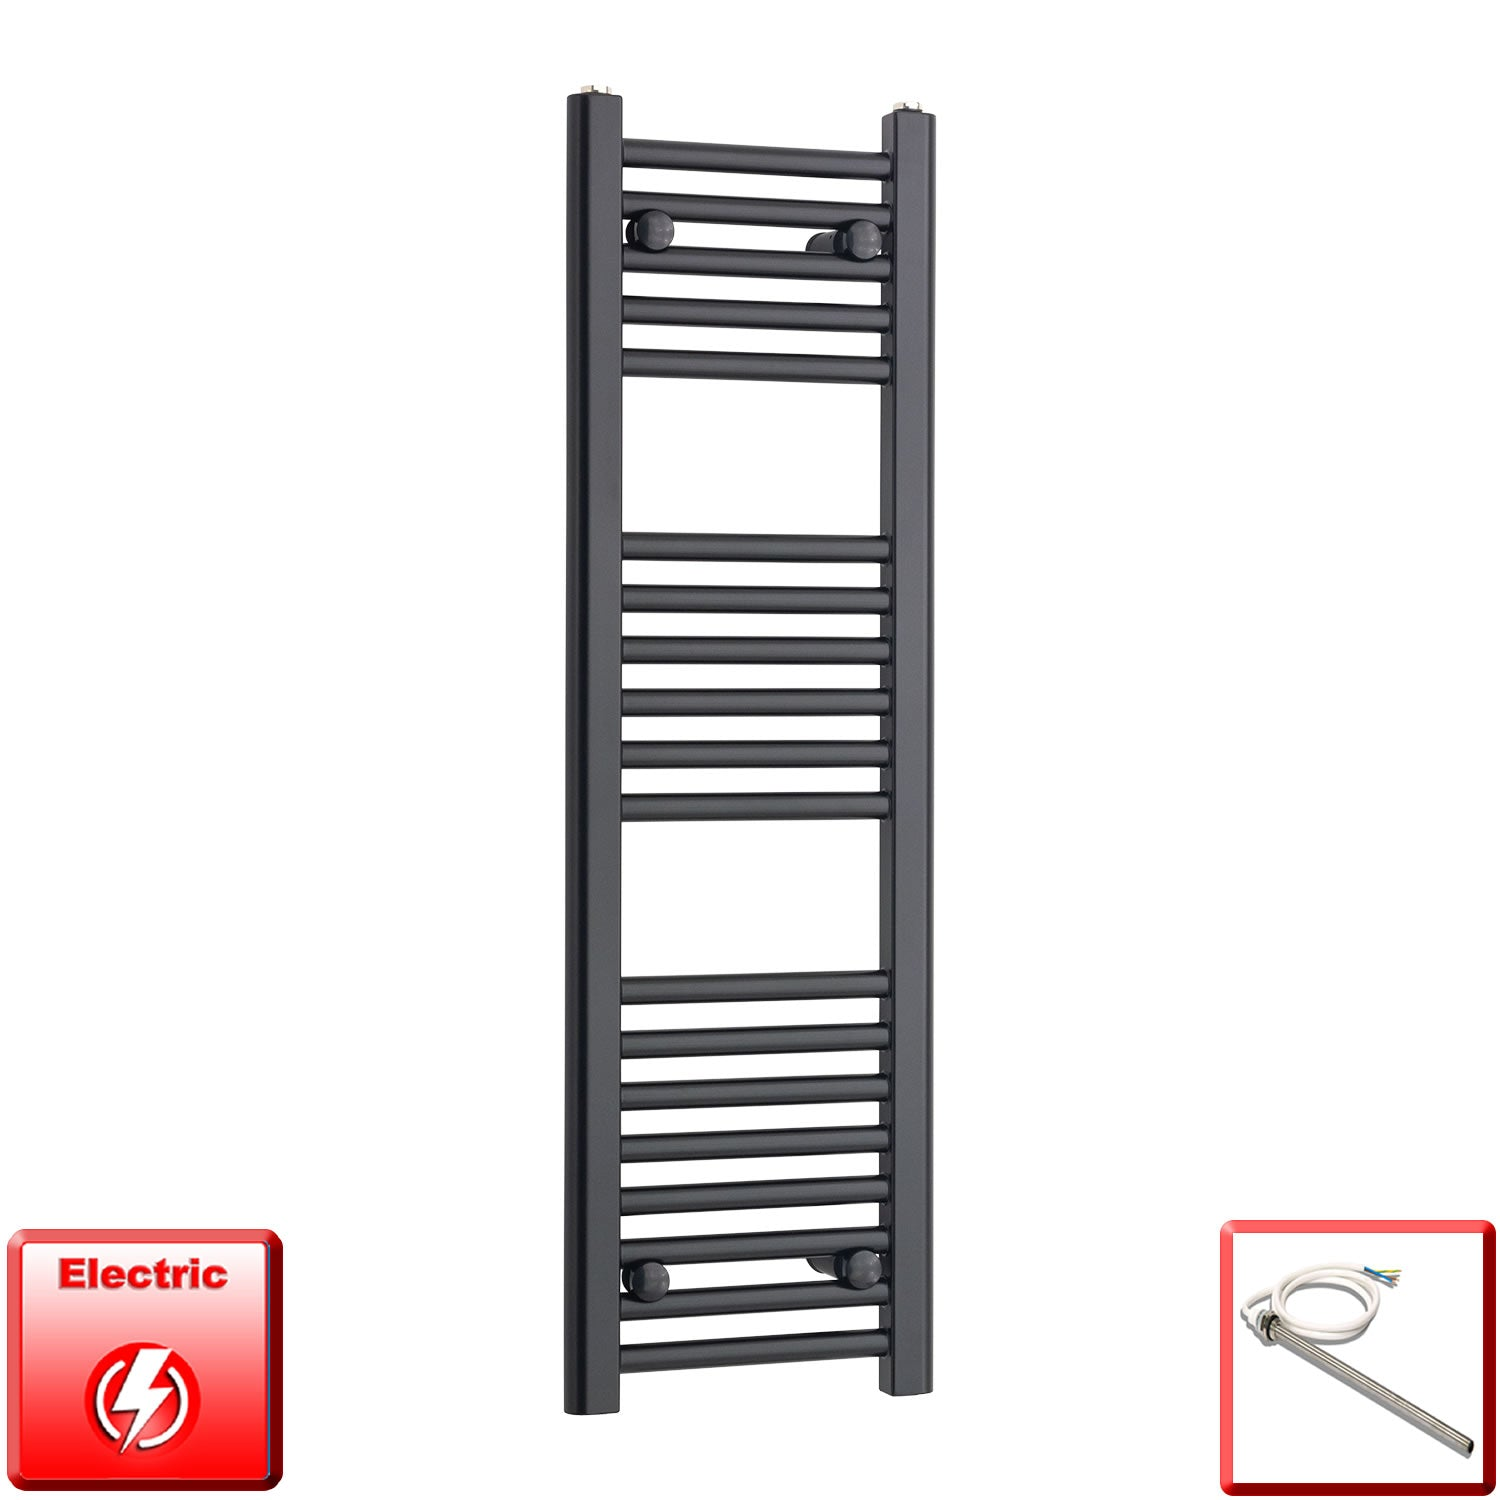 300mm Wide 1000mm High Pre-Filled Black Electric Towel Rail Radiator With Single Heat Element